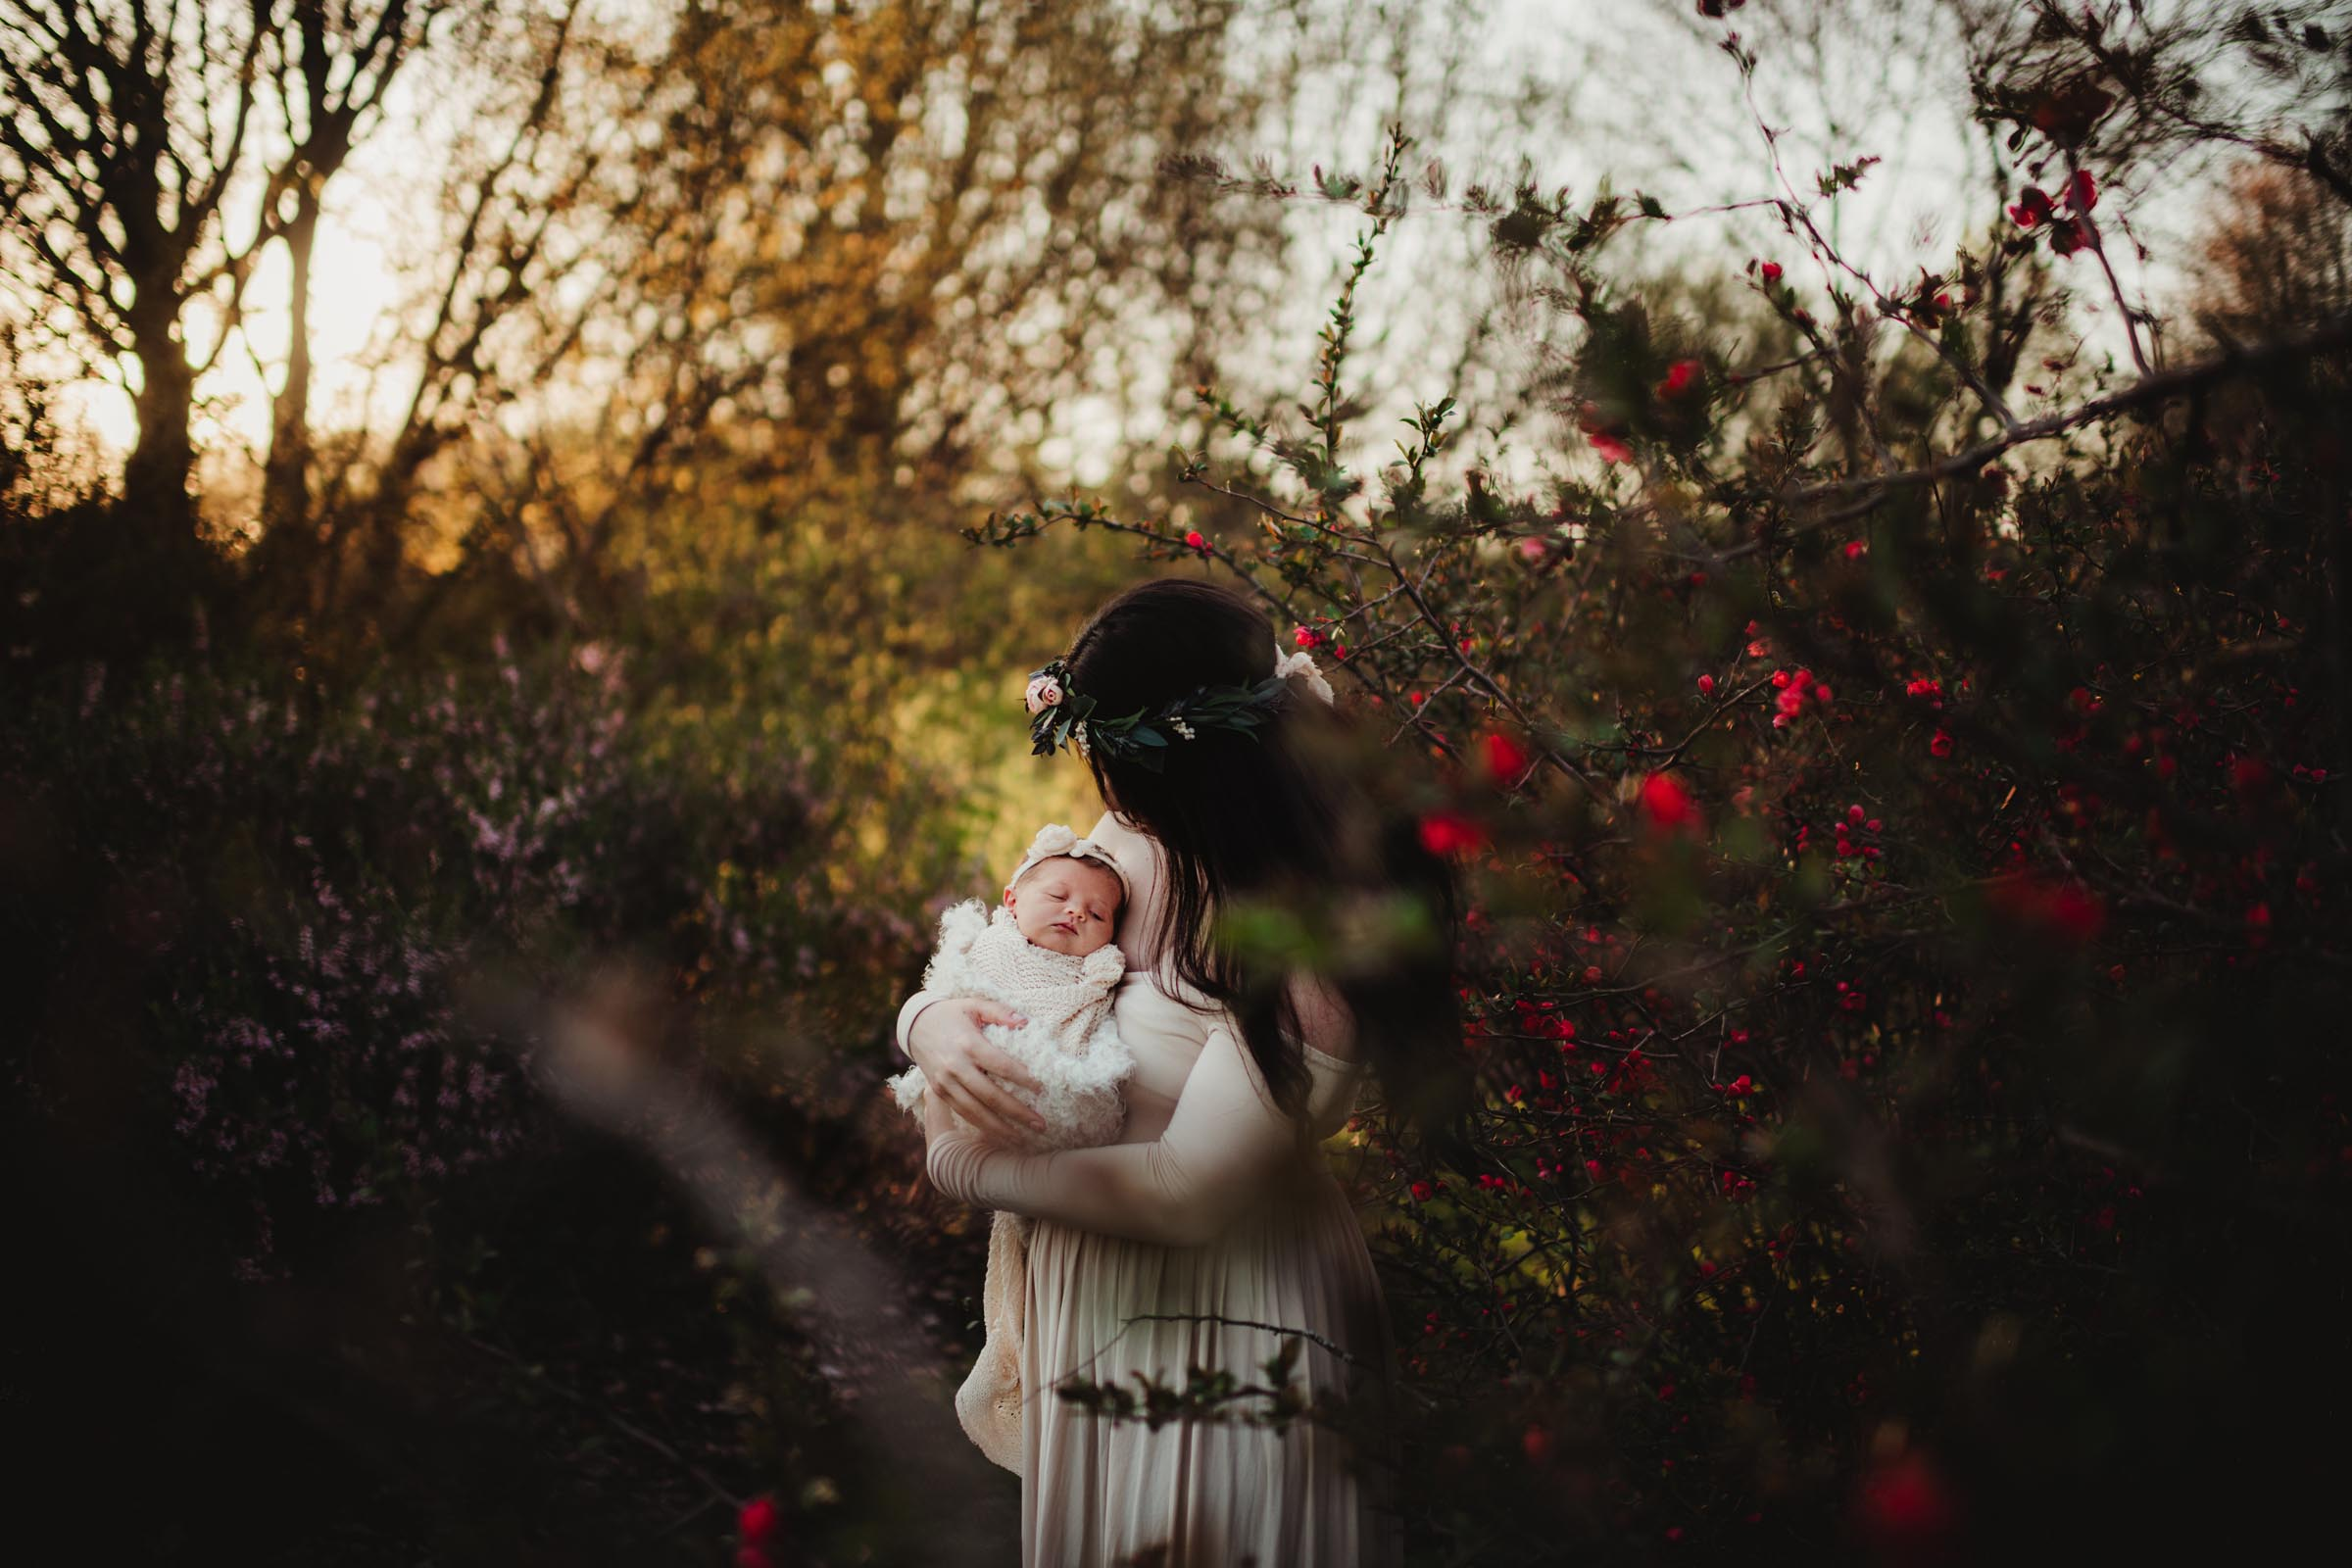 new mother holding her wrapped baby outdoors by red flowers